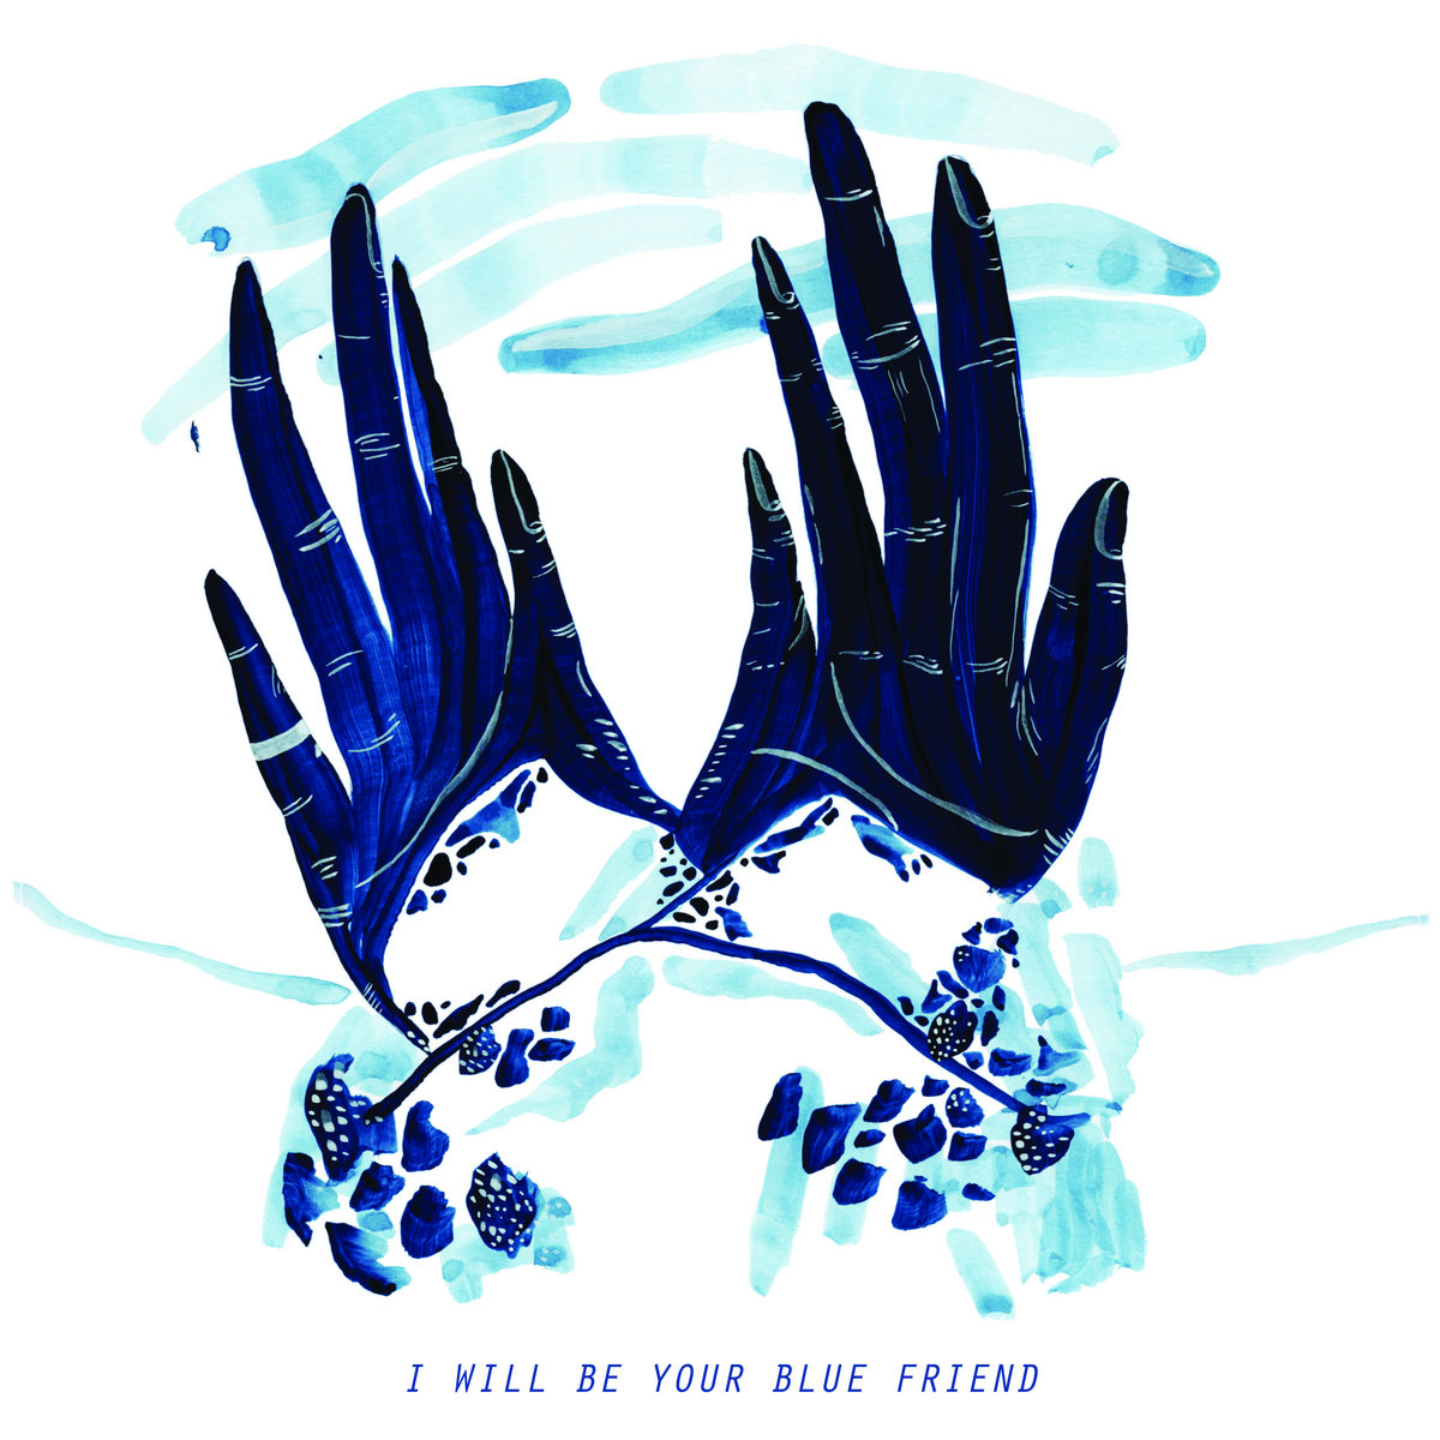 BLUE FRIEND - I Will Be Your Blue Friend LP